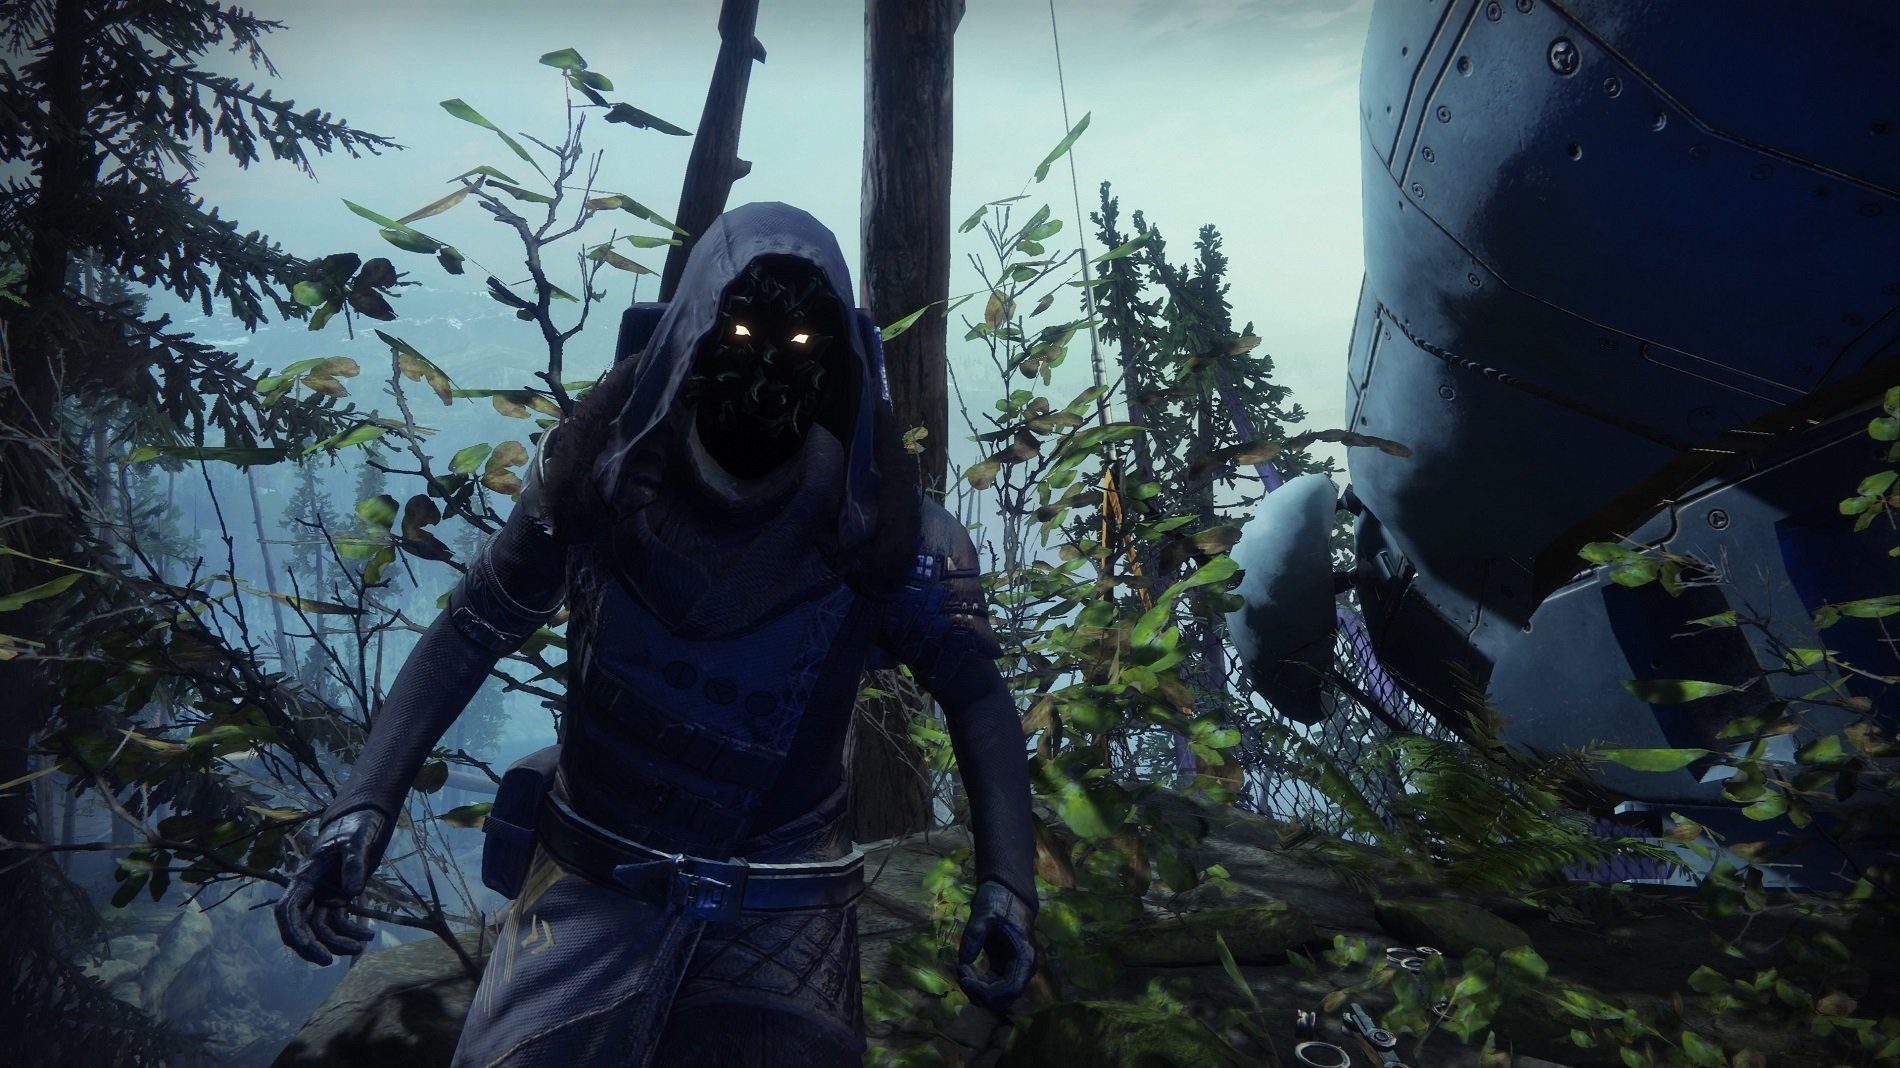 Where to find Xur in Destiny 2 - January 24, 2020